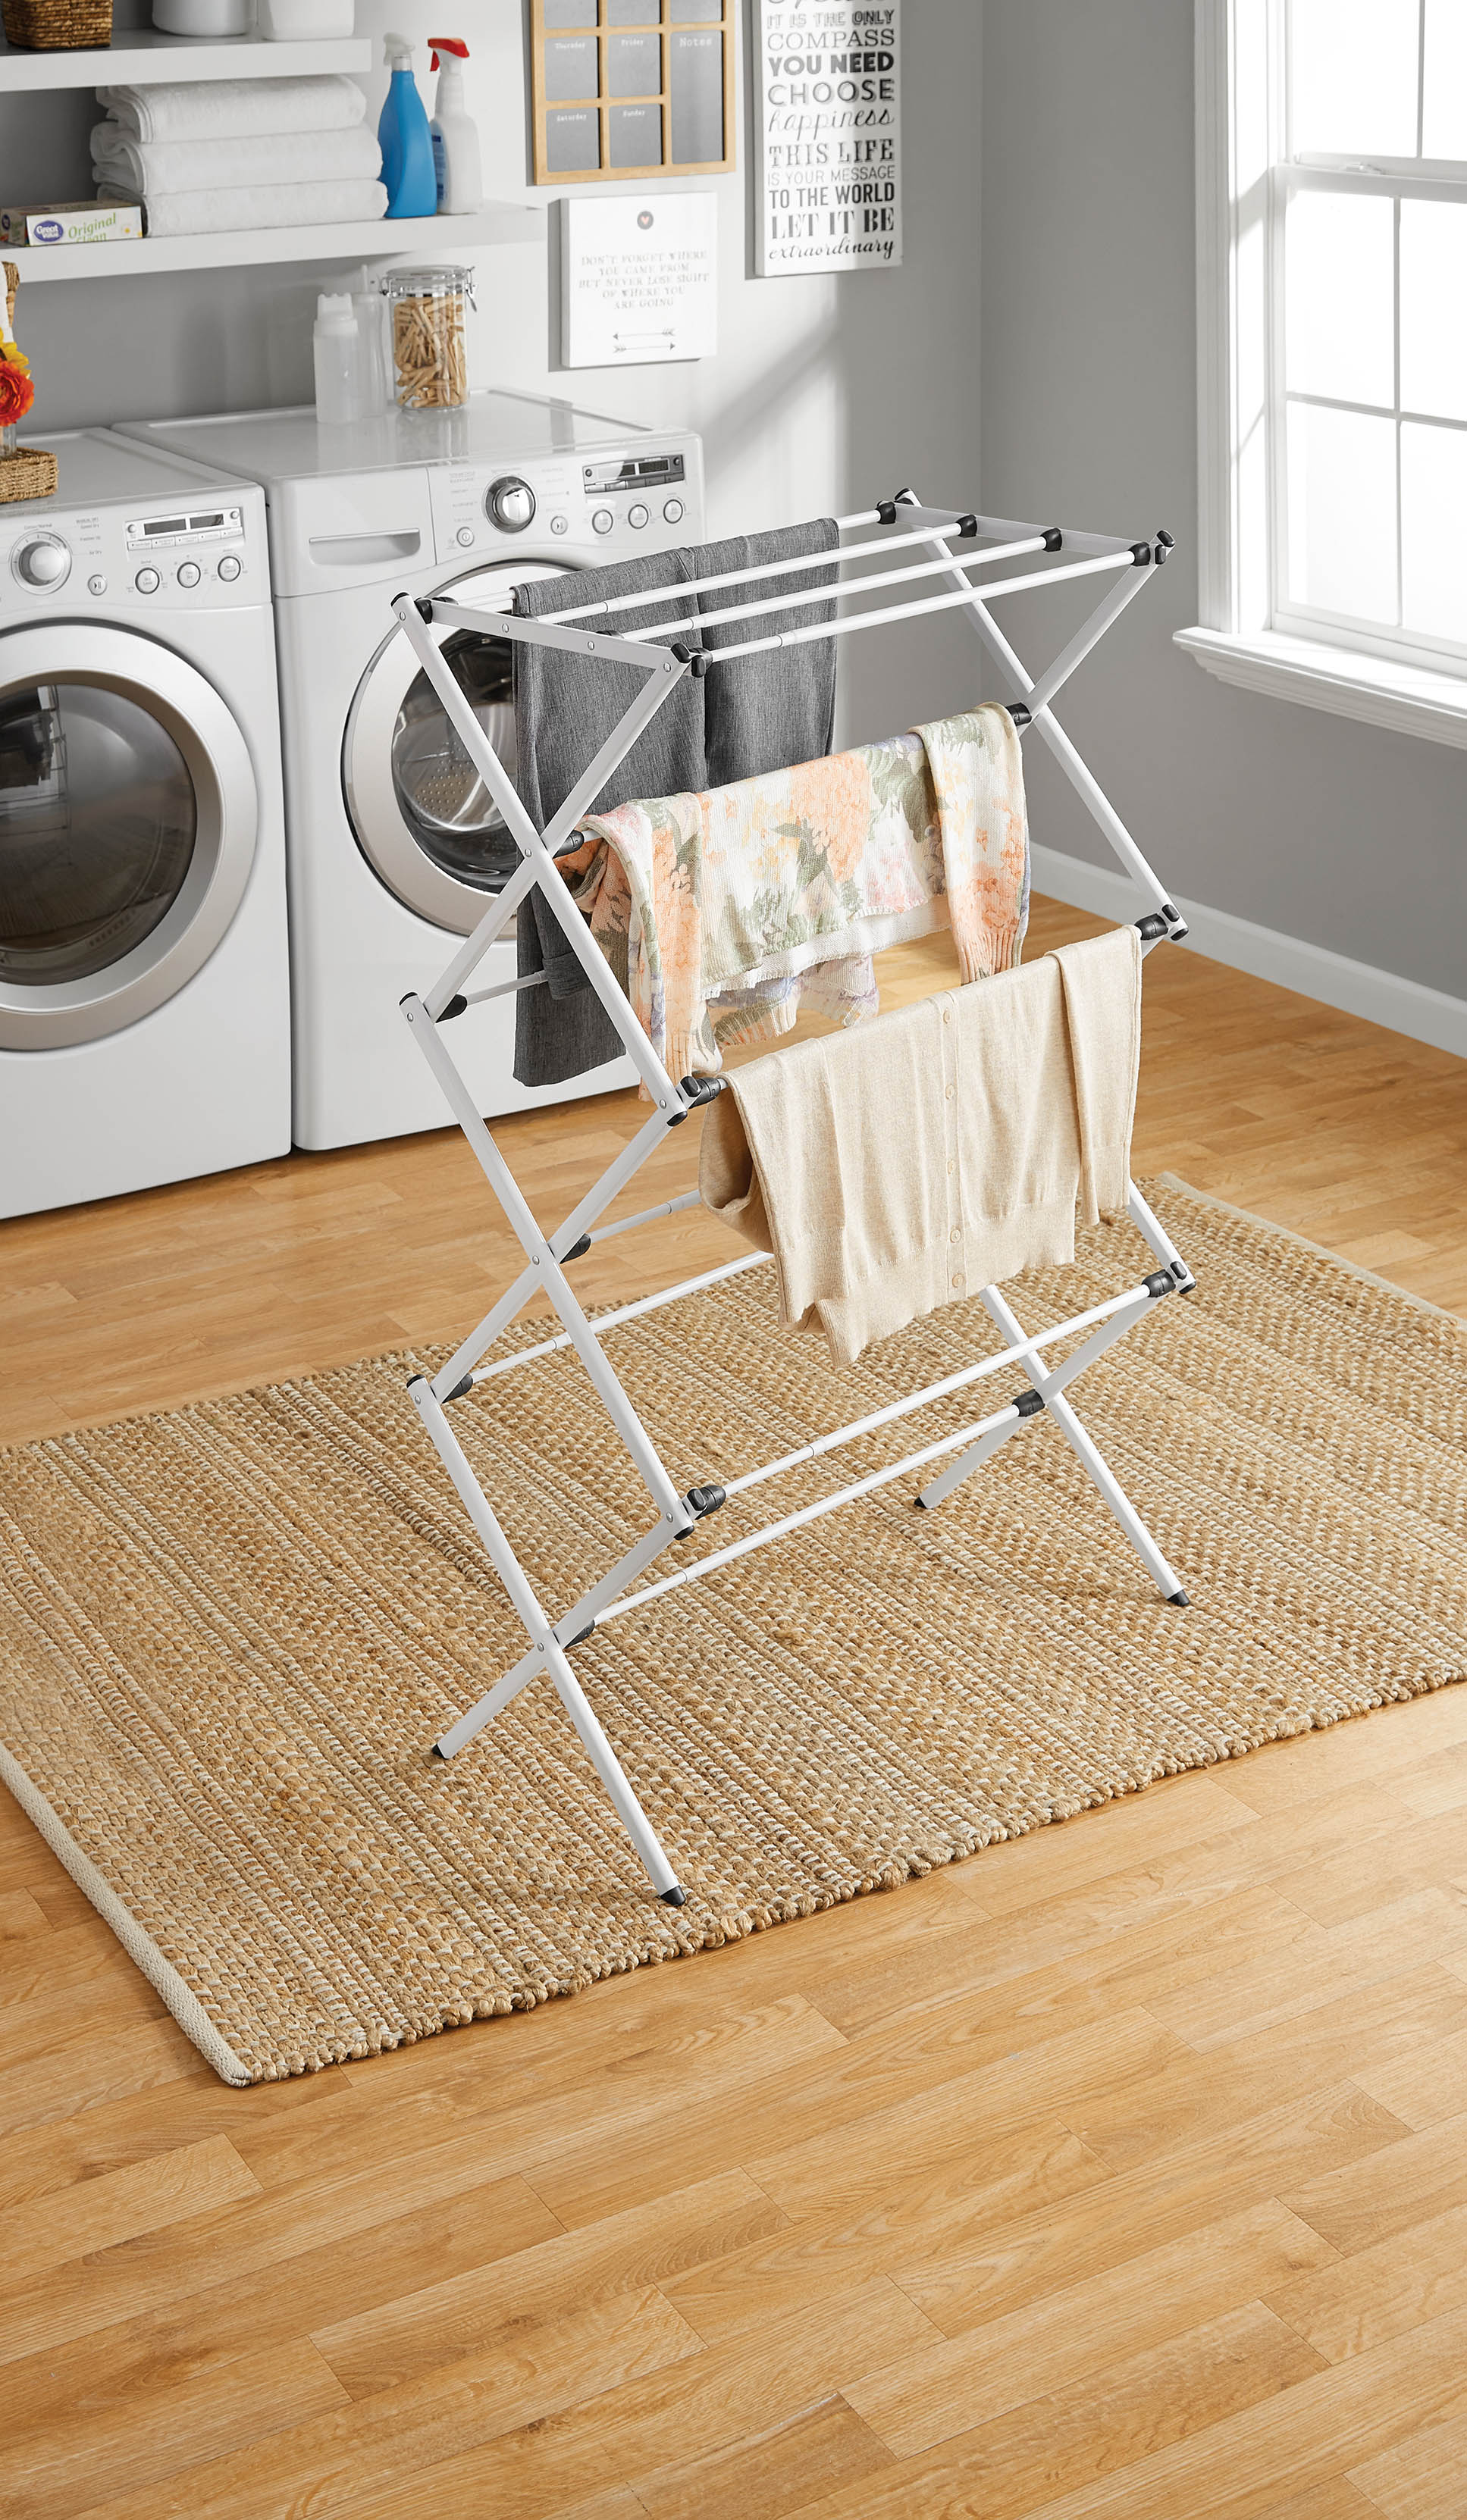 Mainstays Expandable Steel Laundry Drying Rack, White